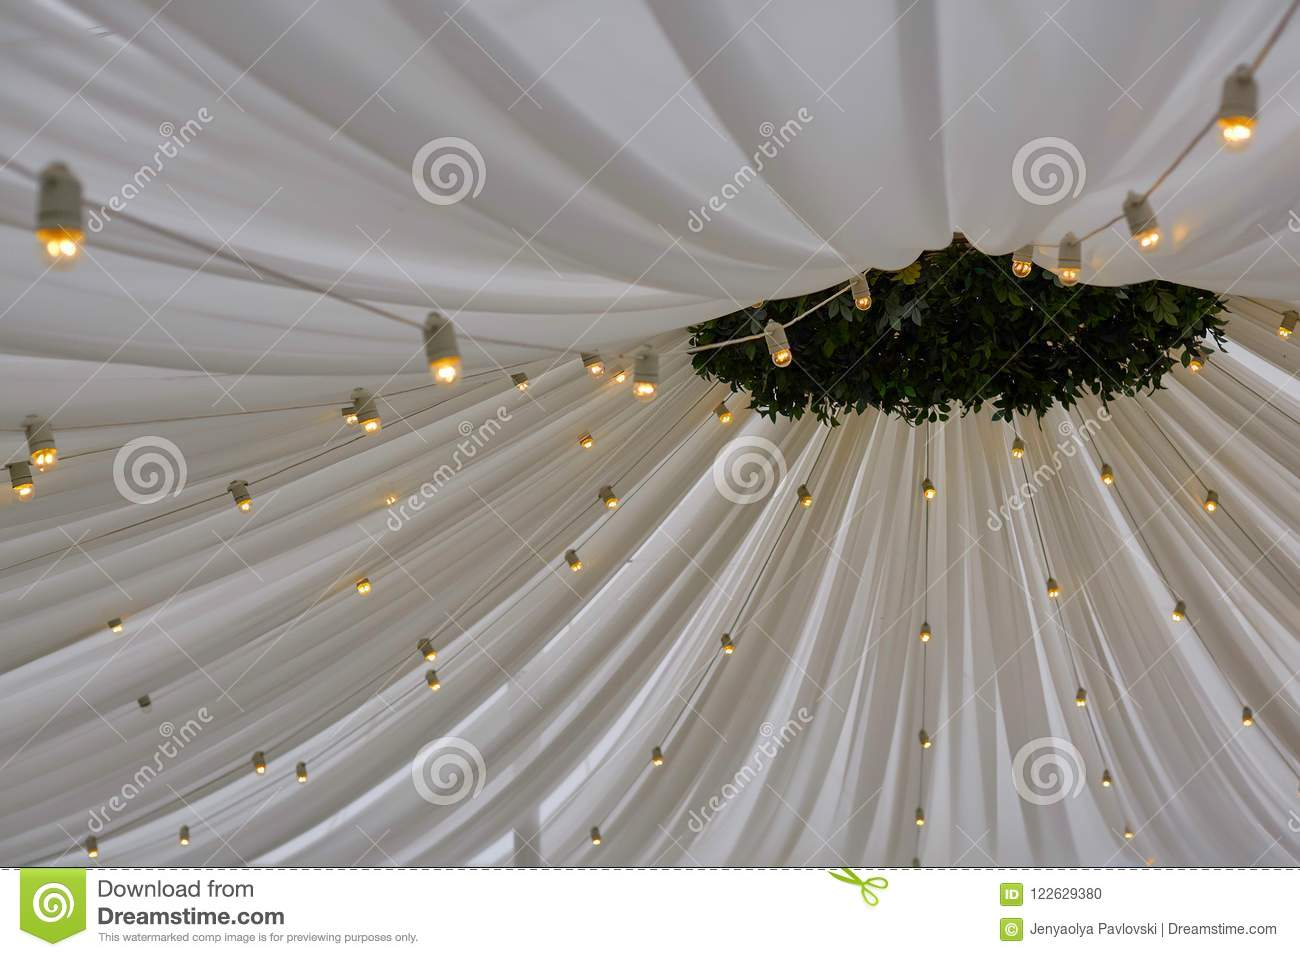 Decorated Tent With Bulb Garland Wedding Setup White Paper Lanterns Inside Of Building Under Wooden Roof Decoration Stock Photo Image Of Bulbs Classic 122629380